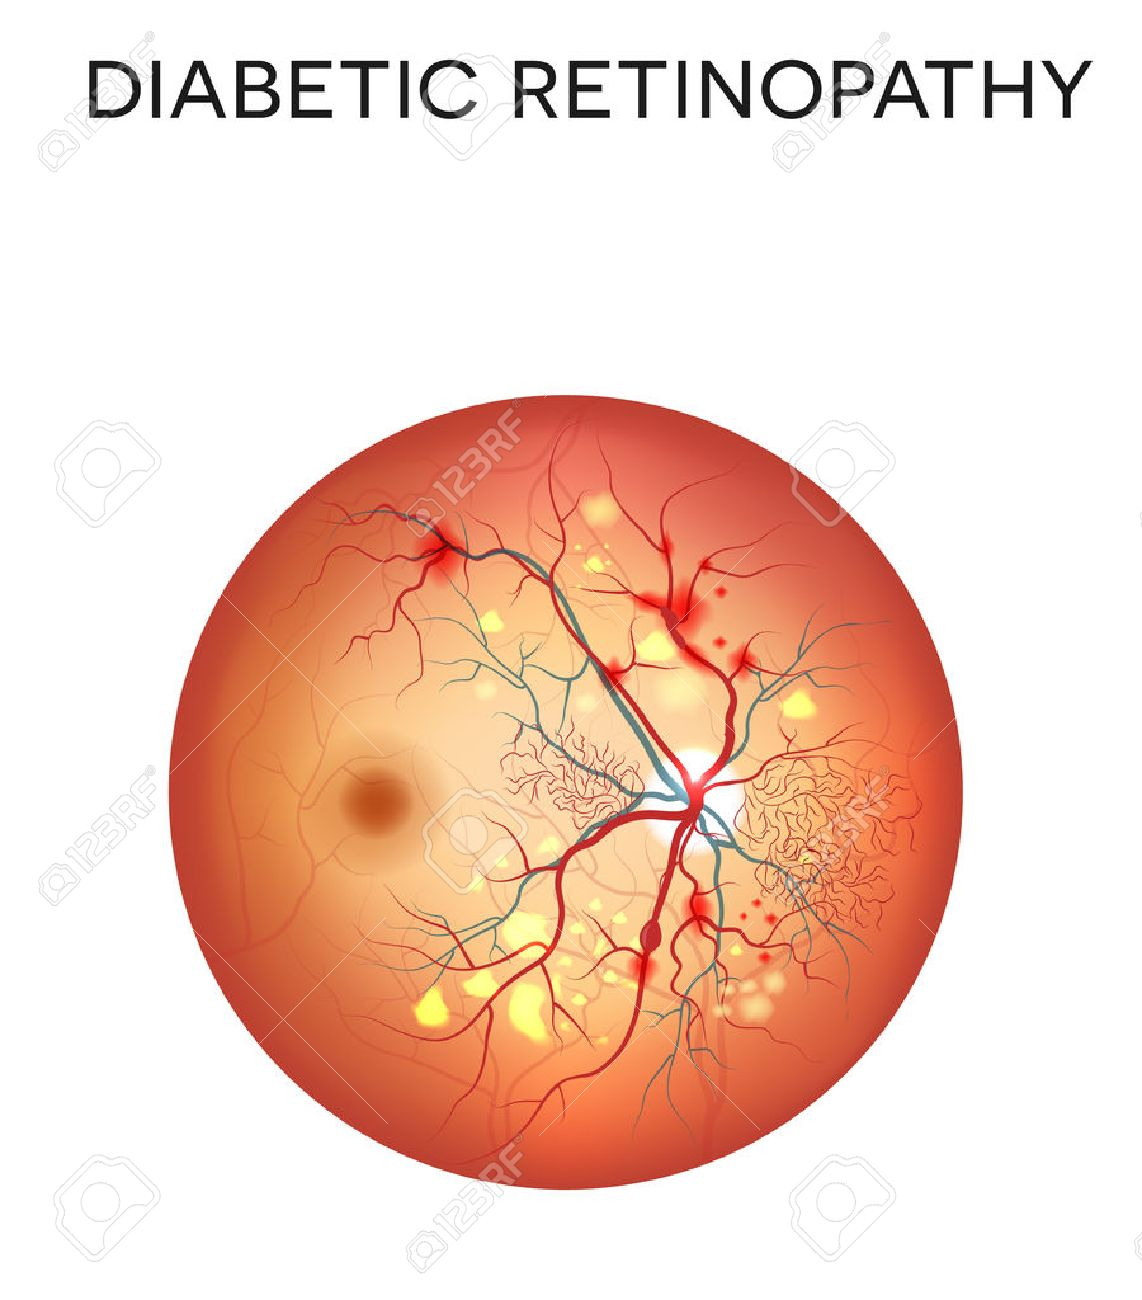 Diabetic retinopathy. The eye condition that affect people with diabetes. Illustration of the retina of the eye - 47427617